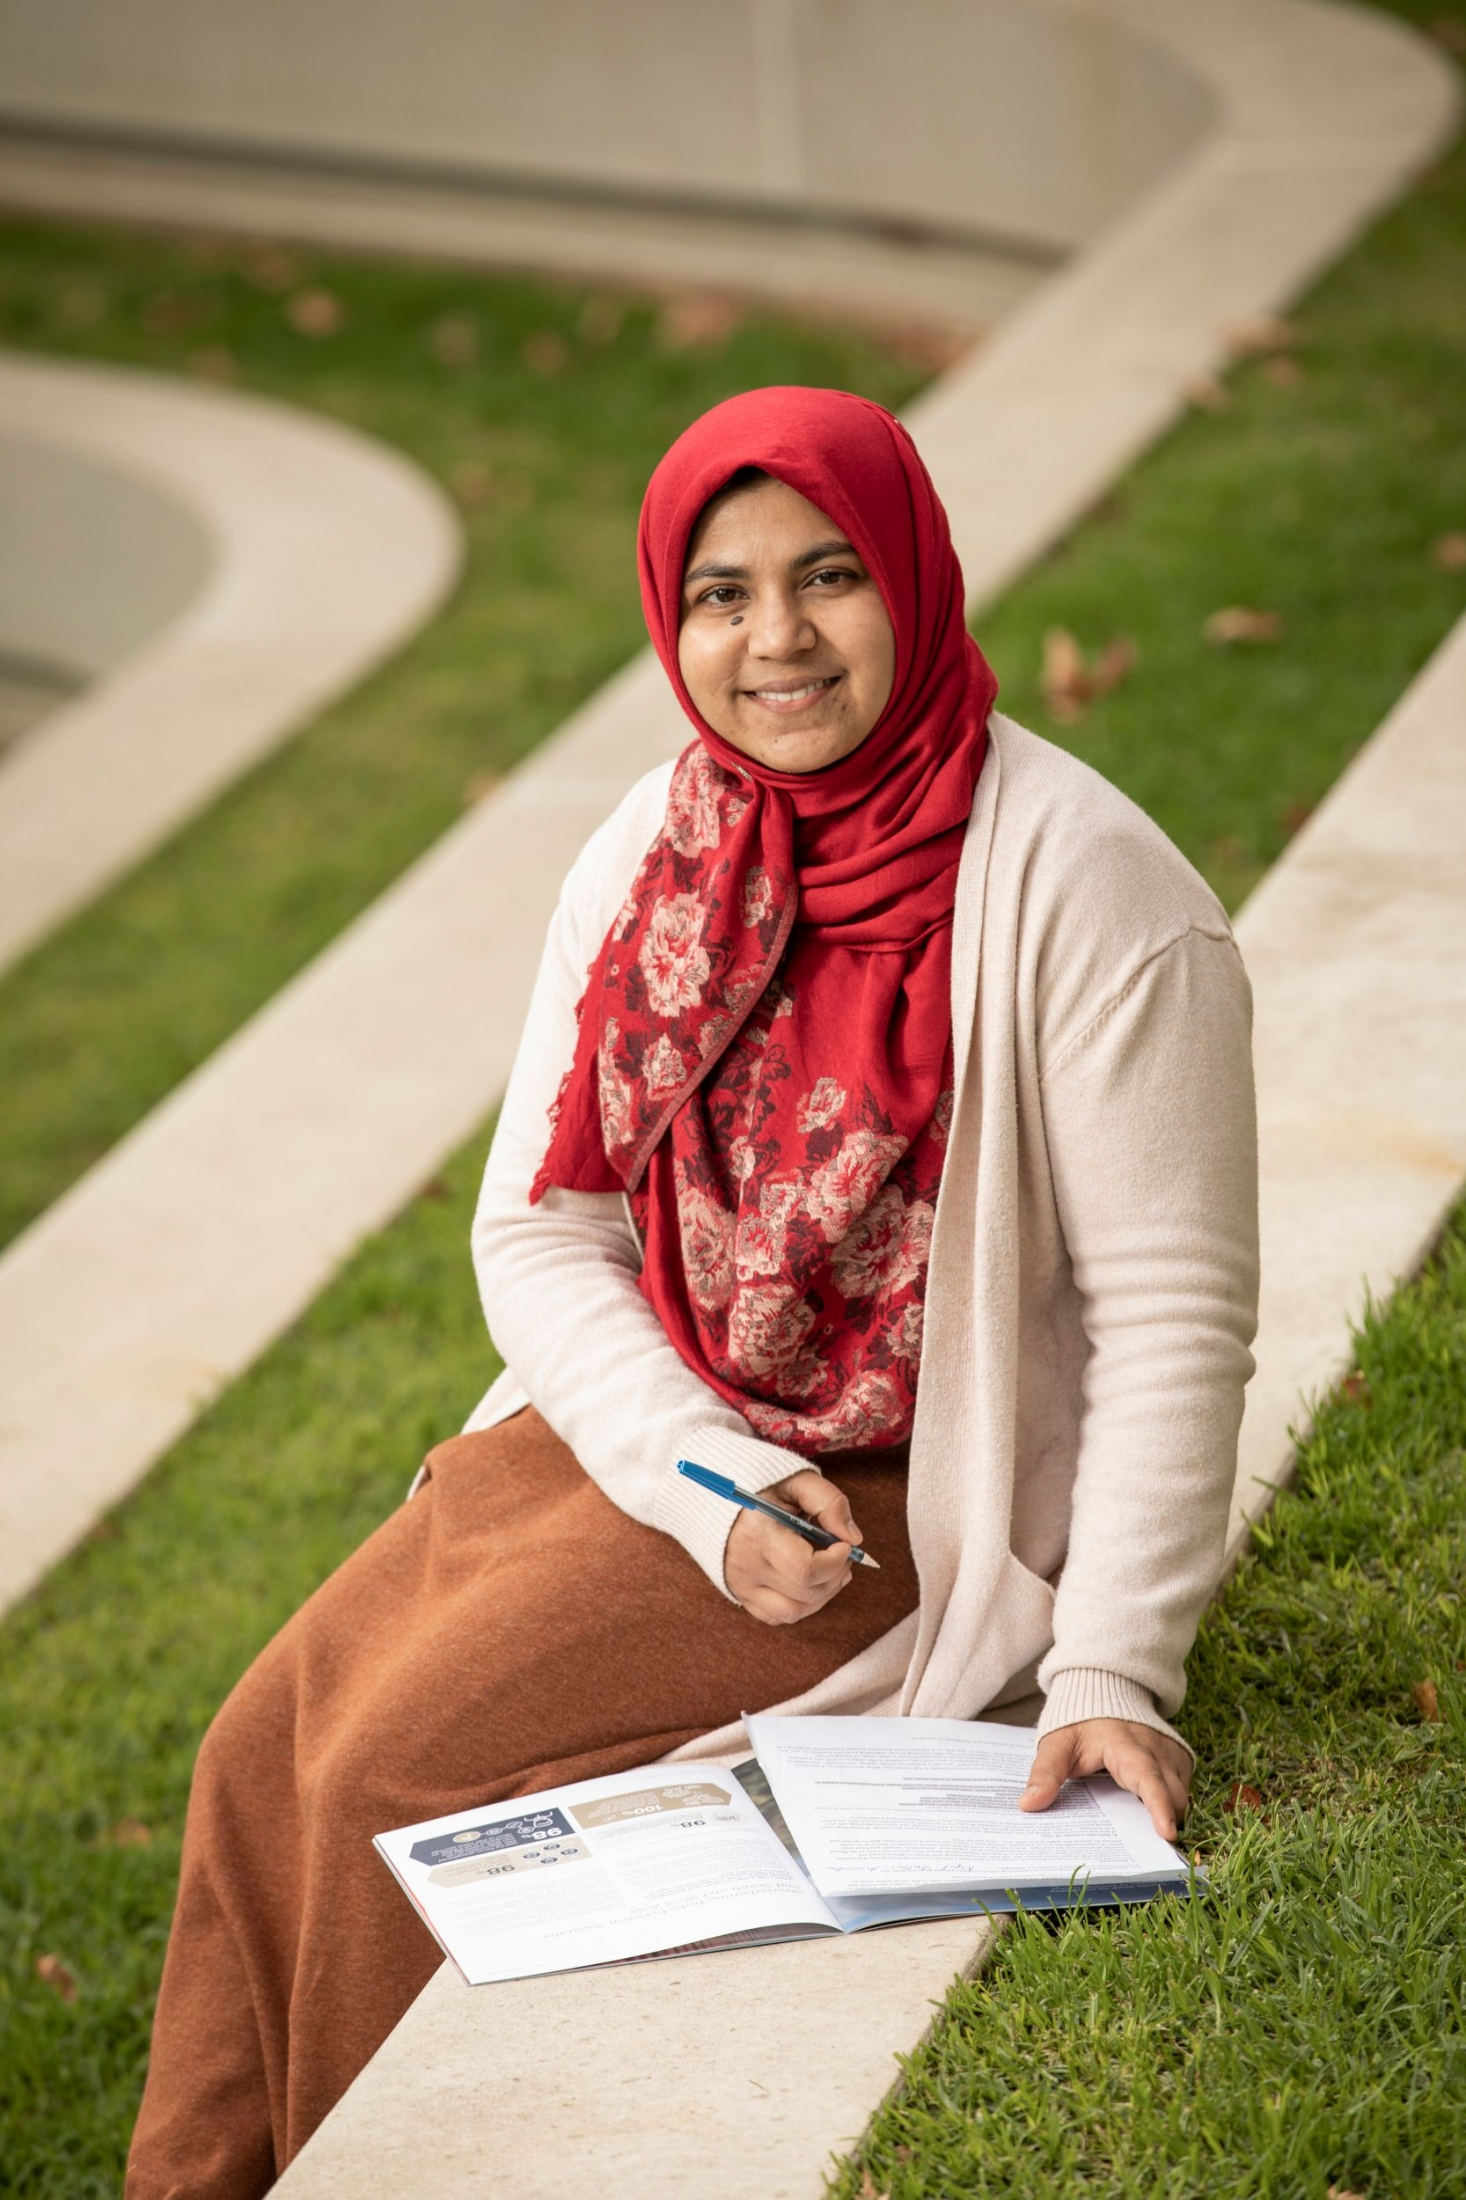 Australia Awards alumna Usha Moosa from the Maldives at the Flinders University campus in South Australia, where she completed a Master of Education (Leadership and Management)